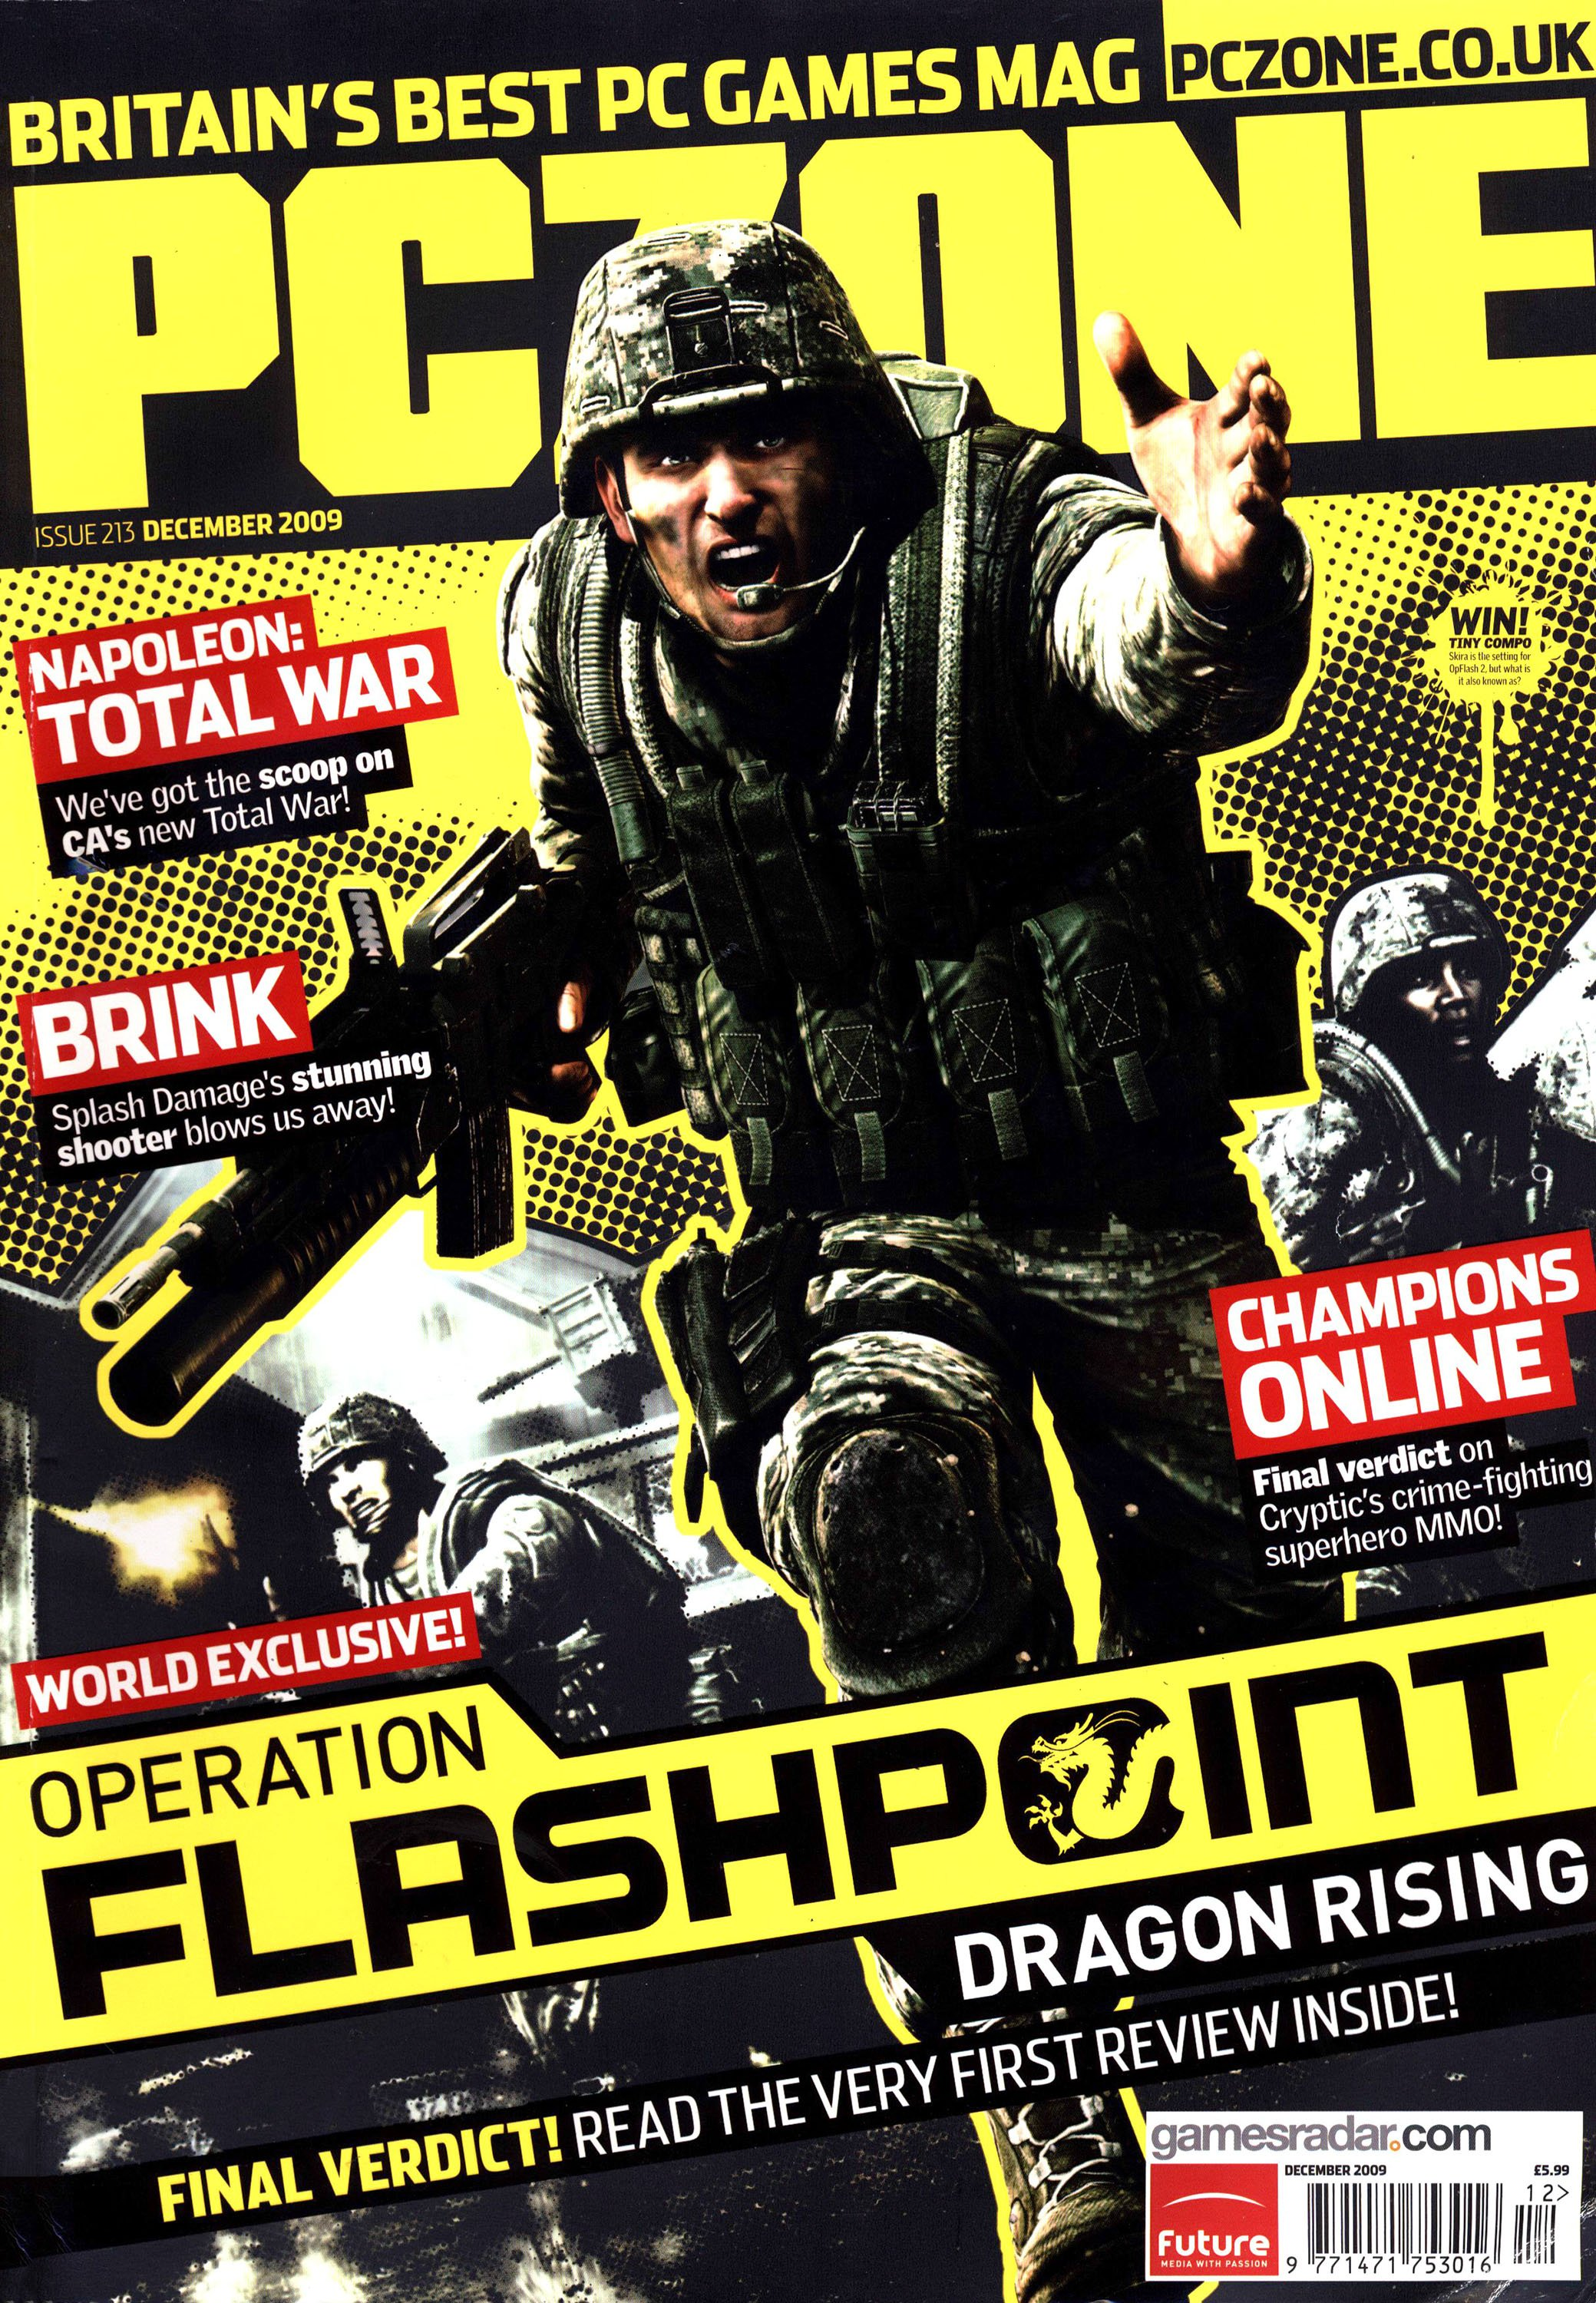 PC Zone Issue 213 (December 2009)